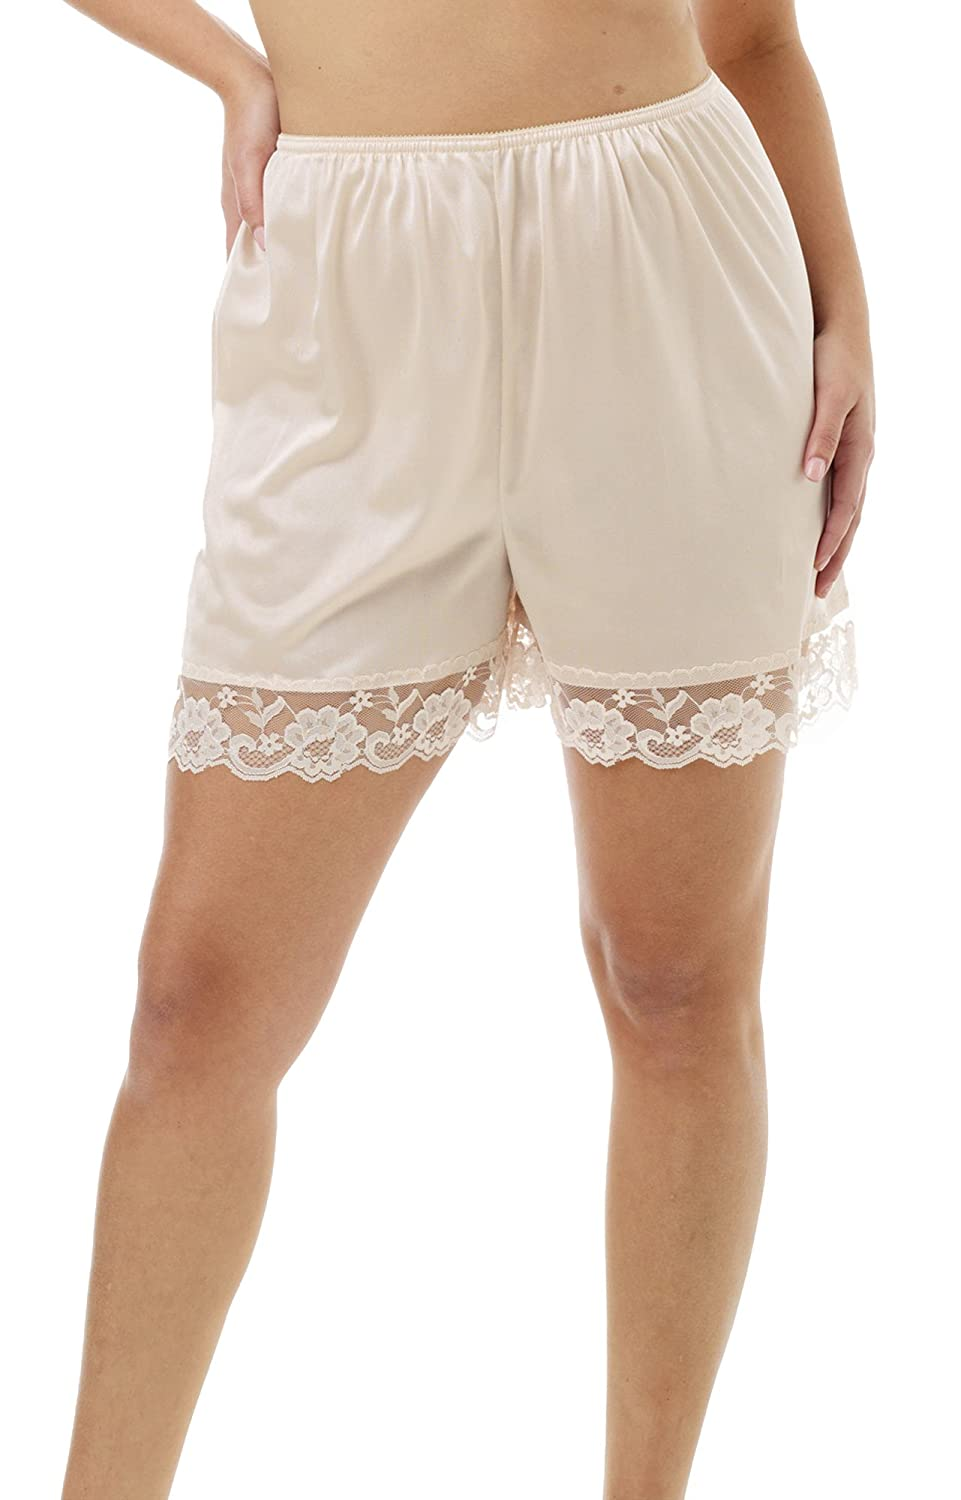 1920s Style Lingerie Underworks Pettipants Nylon Culotte Slip Bloomers Split Skirt 4-inch Inseam $9.99 AT vintagedancer.com